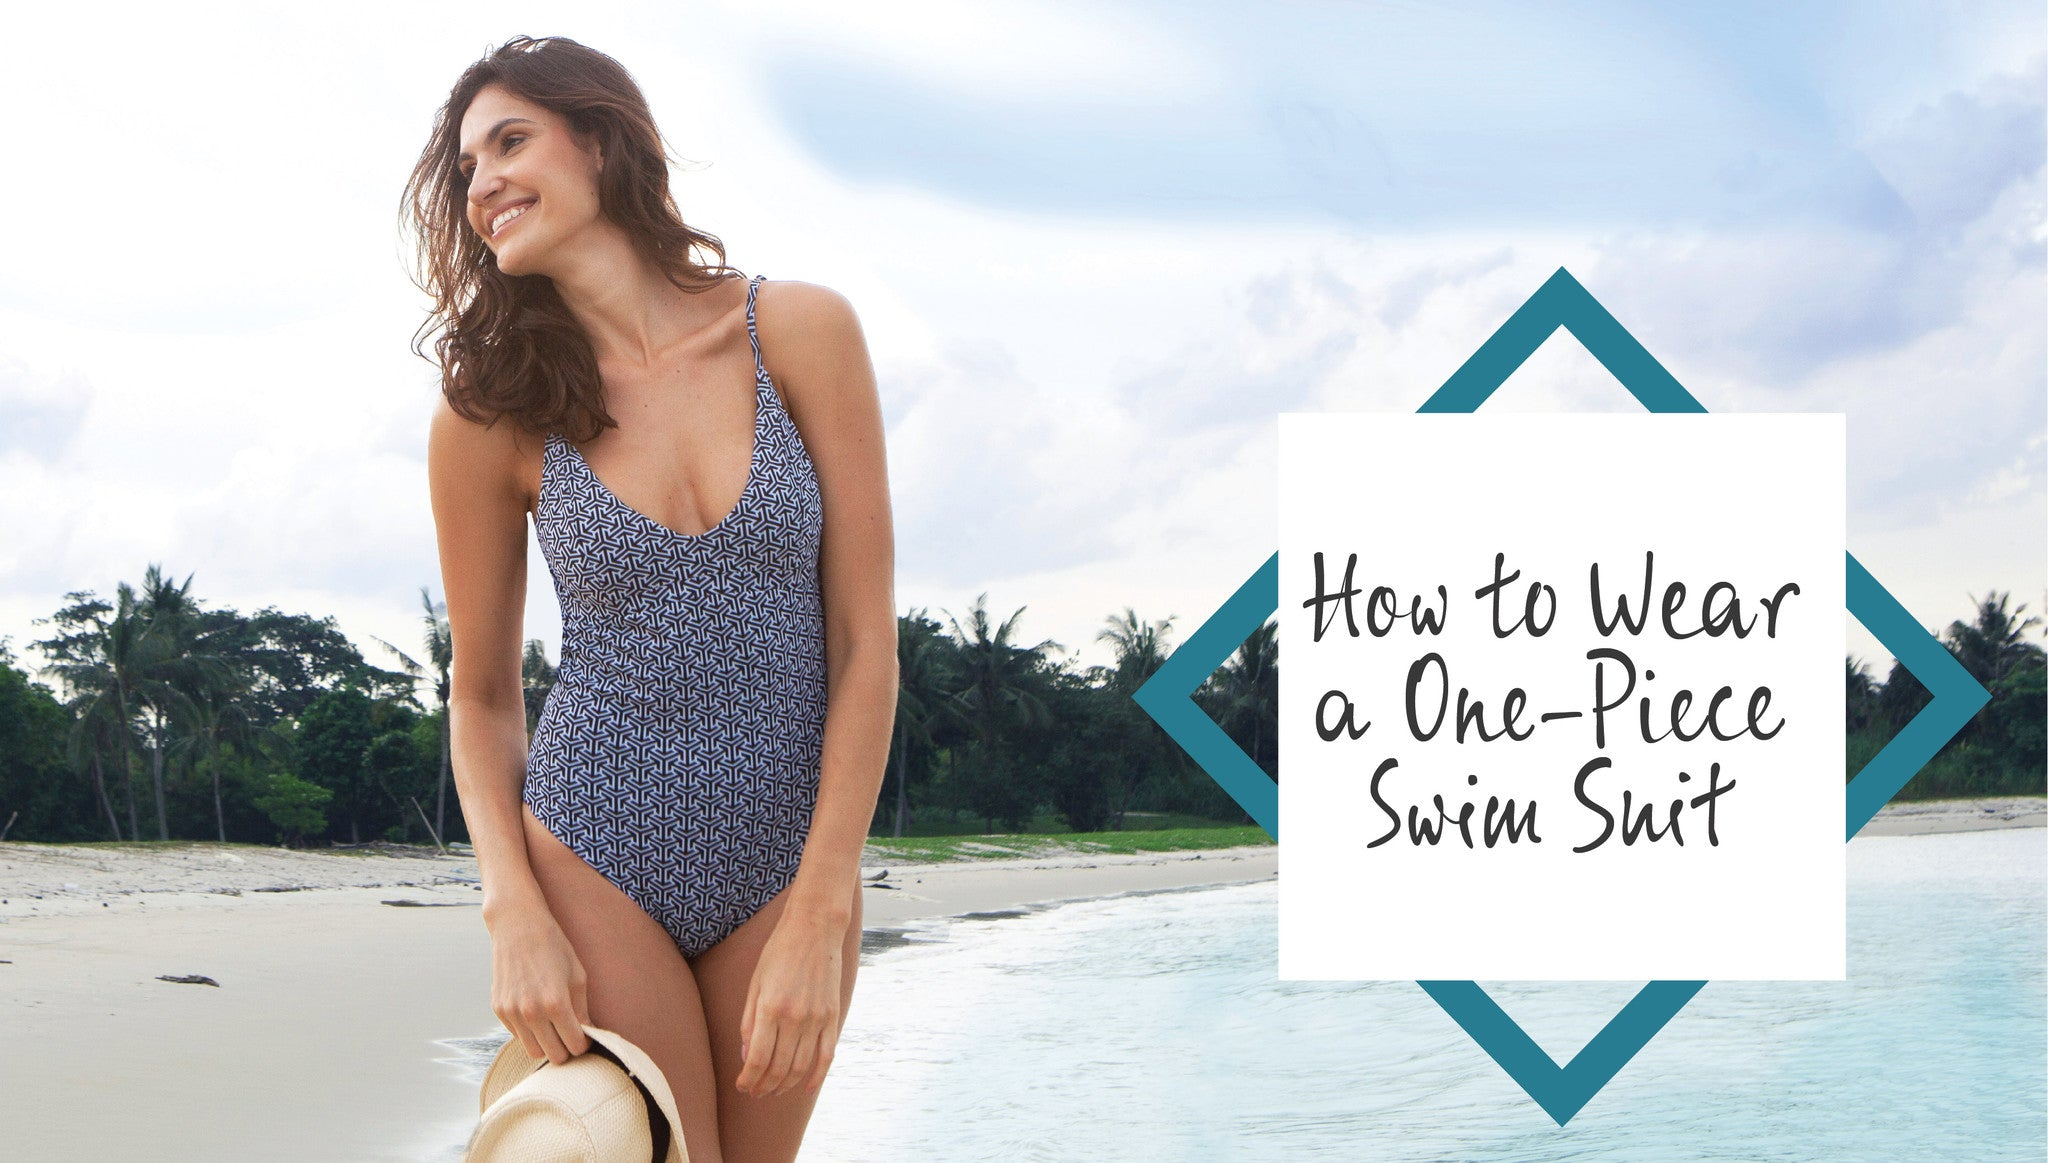 How to Wear a One Piece Suit